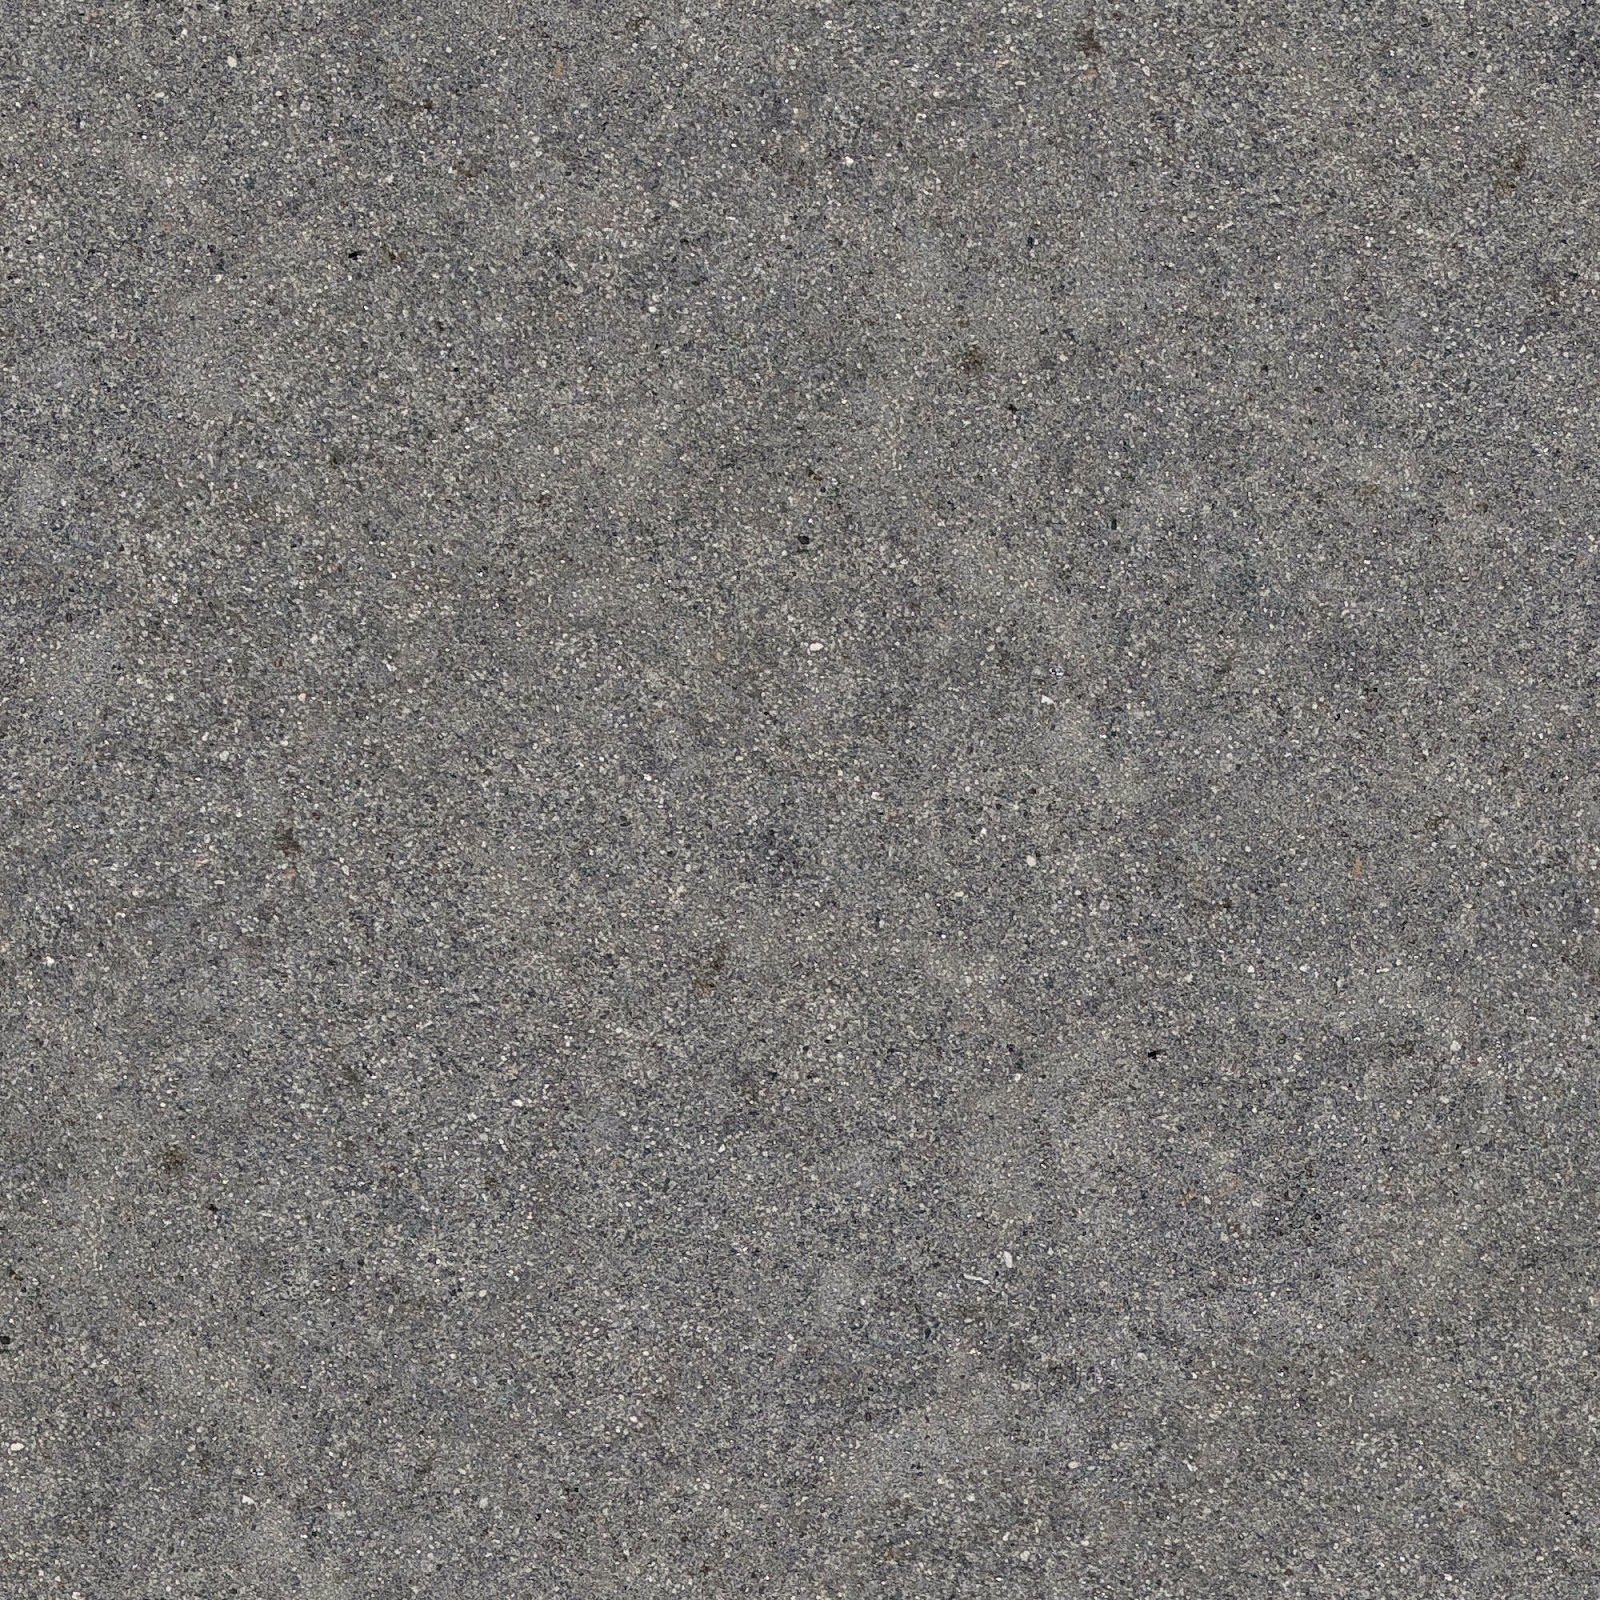 Polished Concrete Floor Texture Seamless. Plain Polished Concrete Floor Texture Seamless Plaster Wall